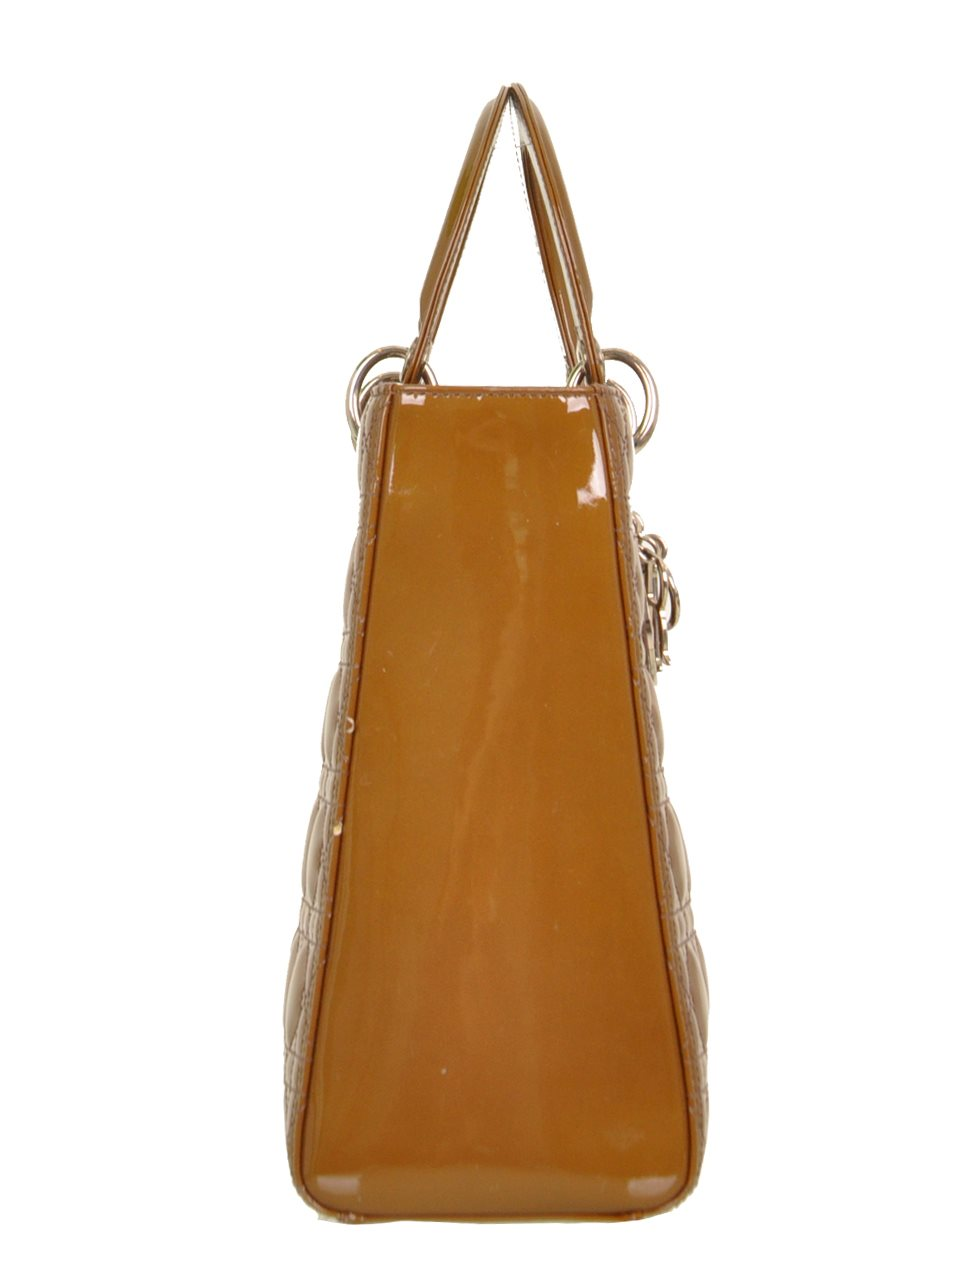 Christian Dior - Lady Dior Large Rugan - Image 4 of 7